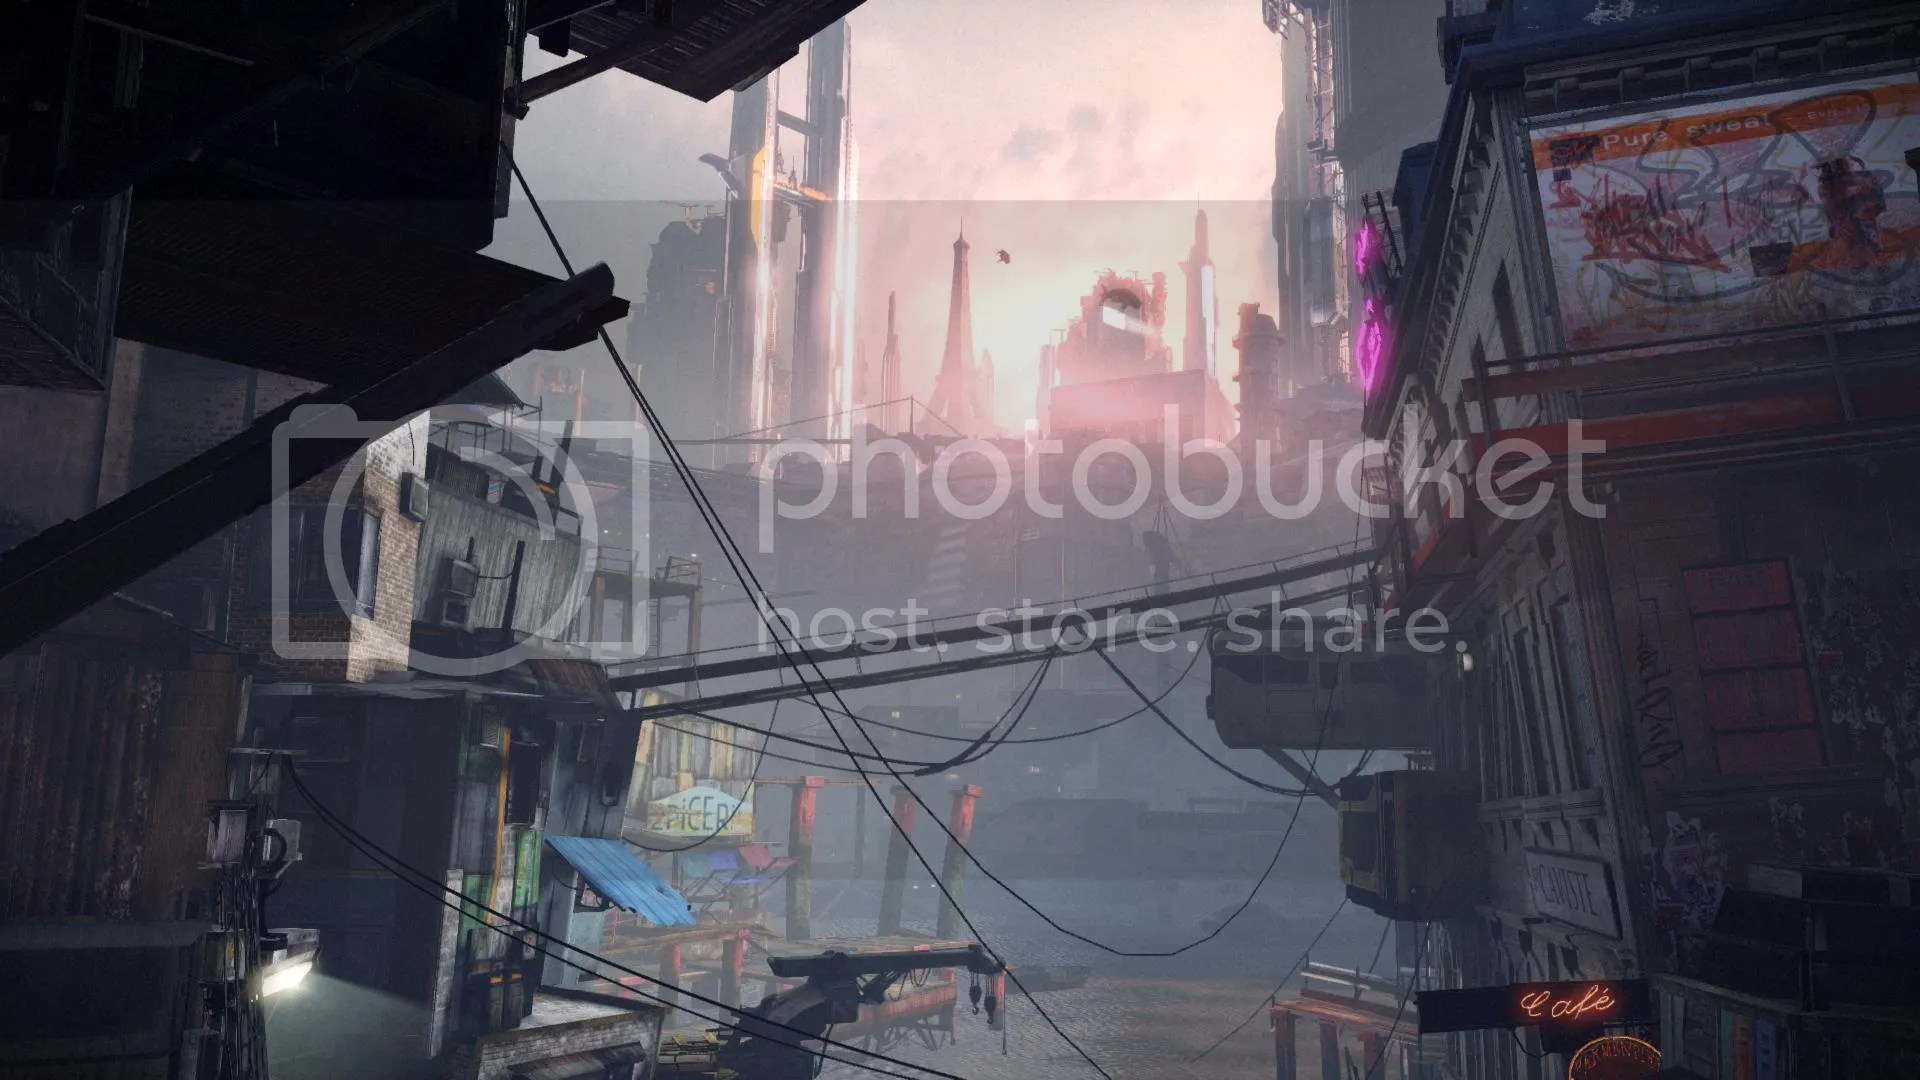 Early morning in the slums.